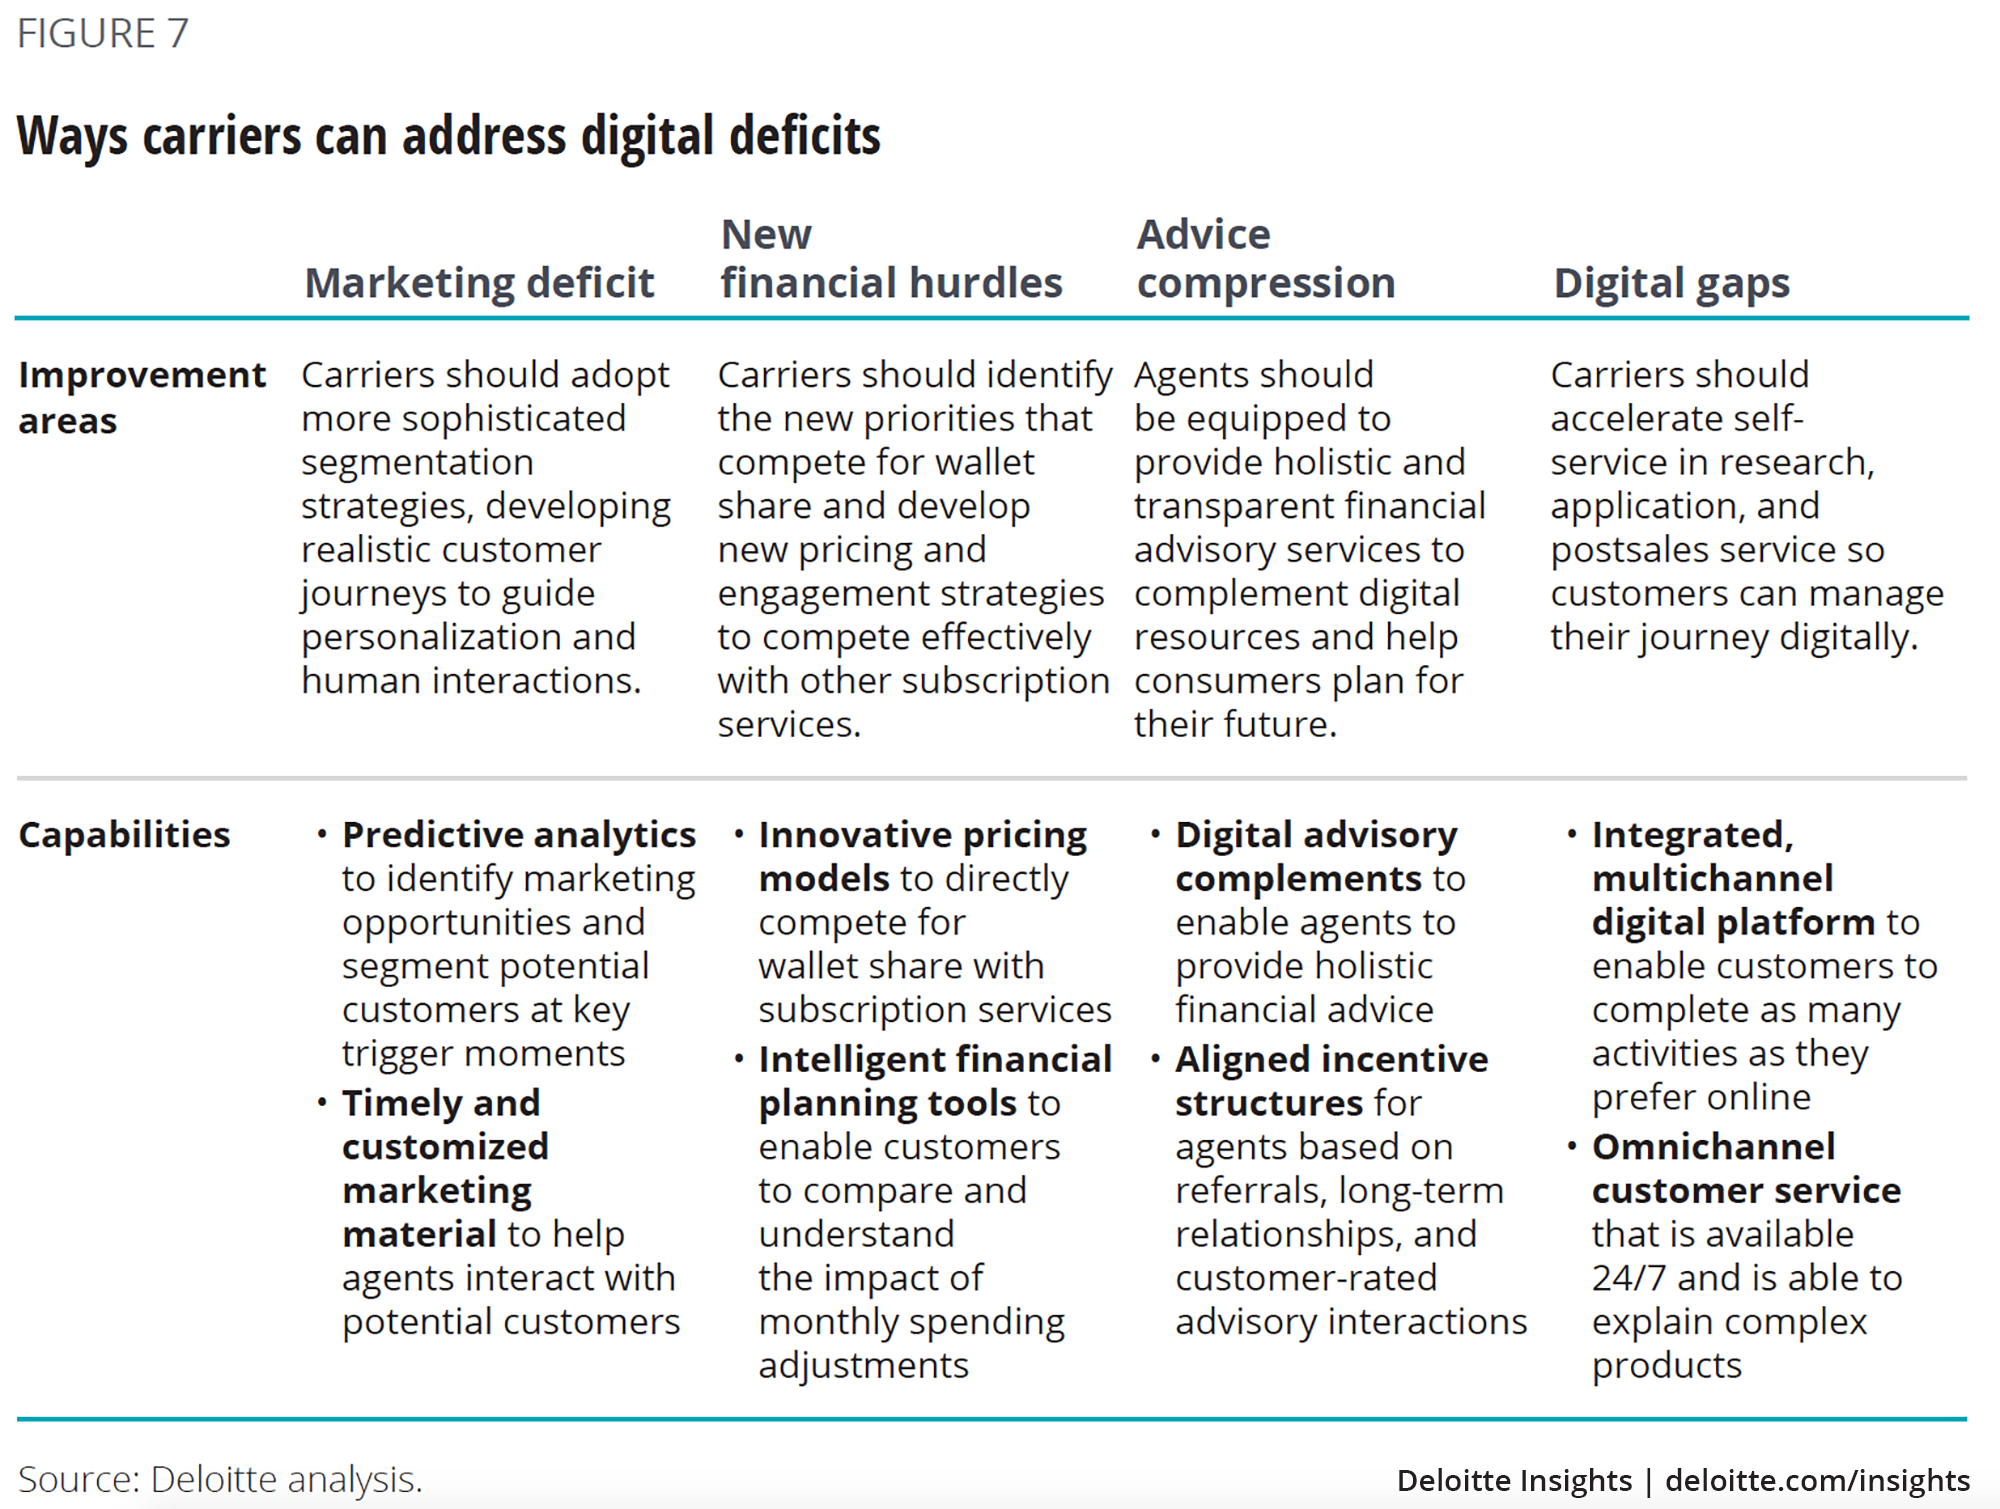 Ways carriers can address digital deficits